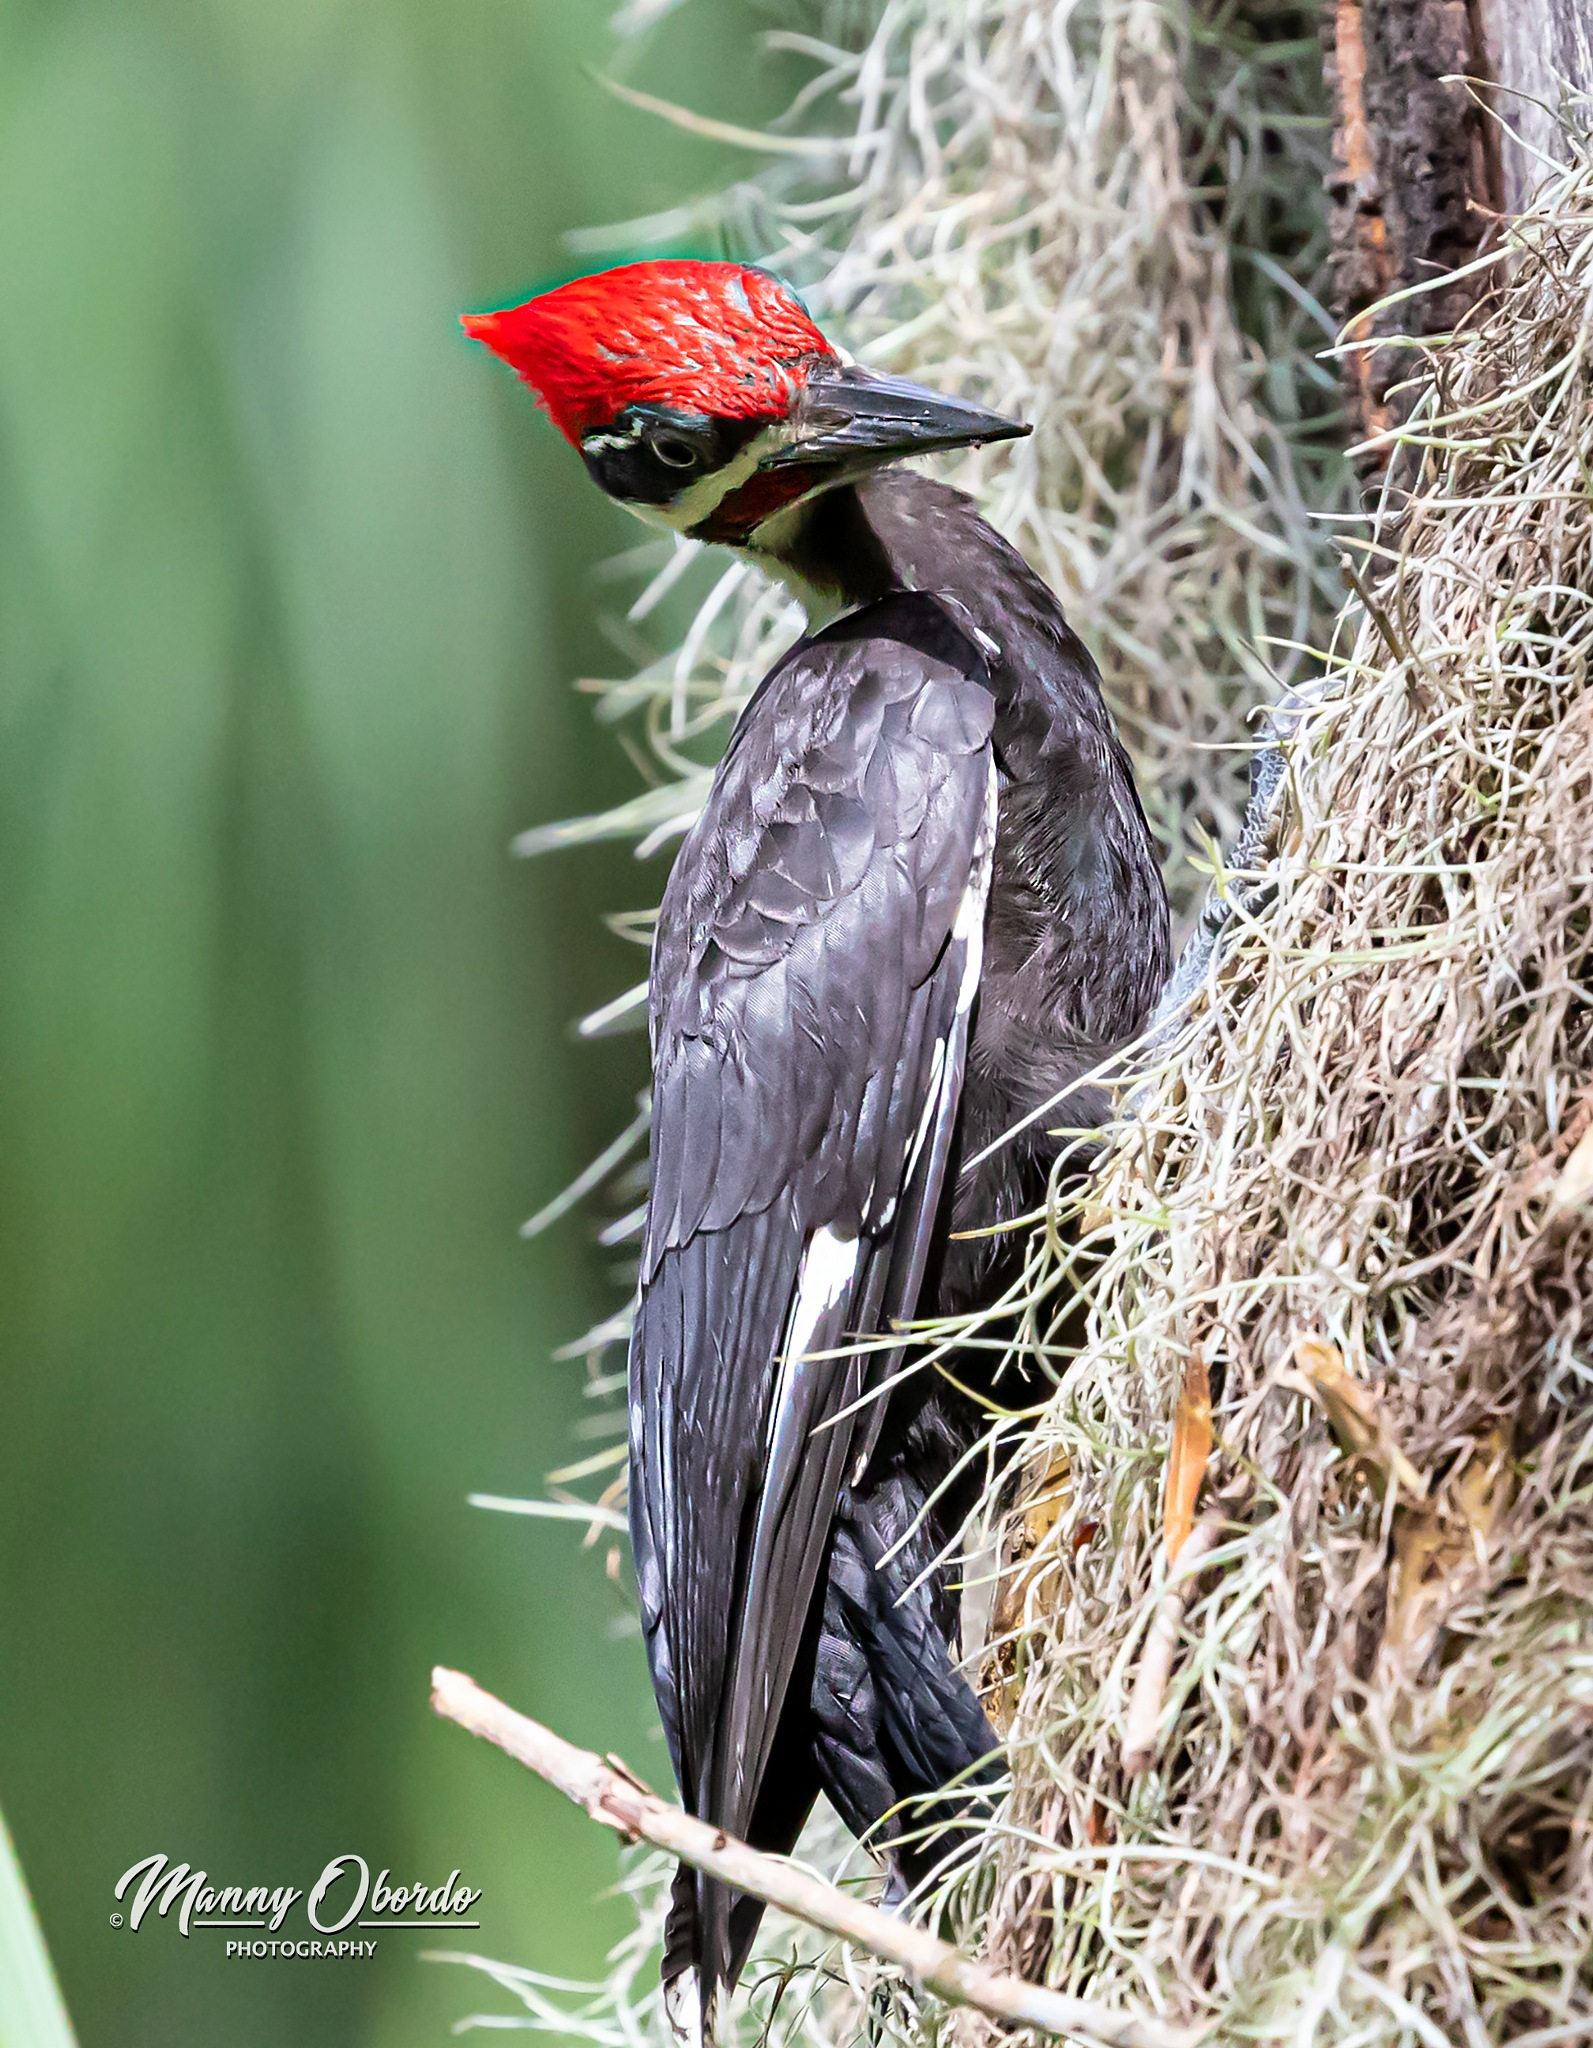 Pileated Woodpecker in the park on the prowl by Manny Obordo